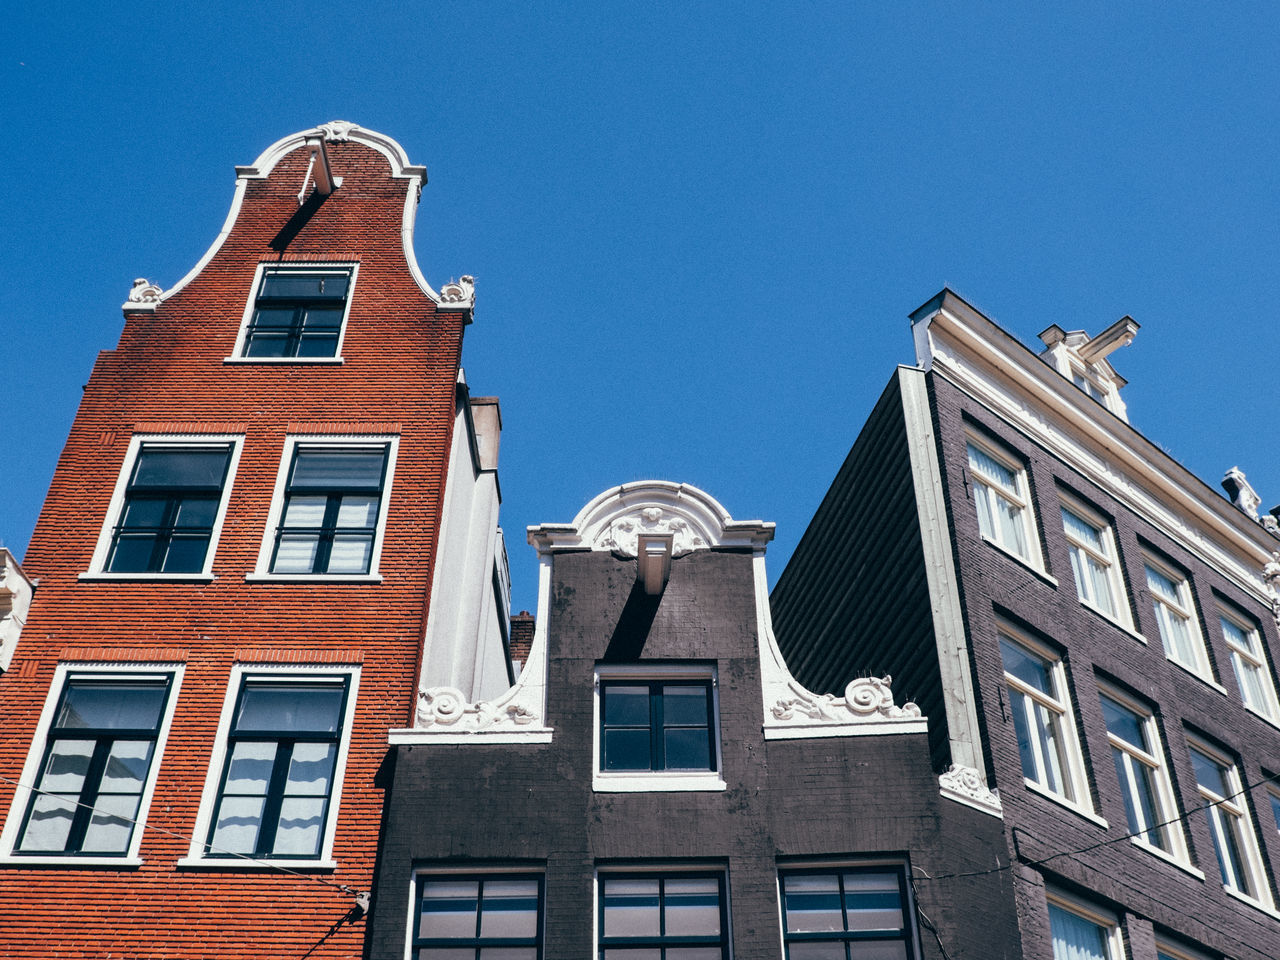 Amsterdam Architecture Blue Building Exterior Built Structure City Clear Sky Day Low Angle View Netherlands No People Outdoors Sky Sunlight The Architect - 2017 EyeEm Awards Window